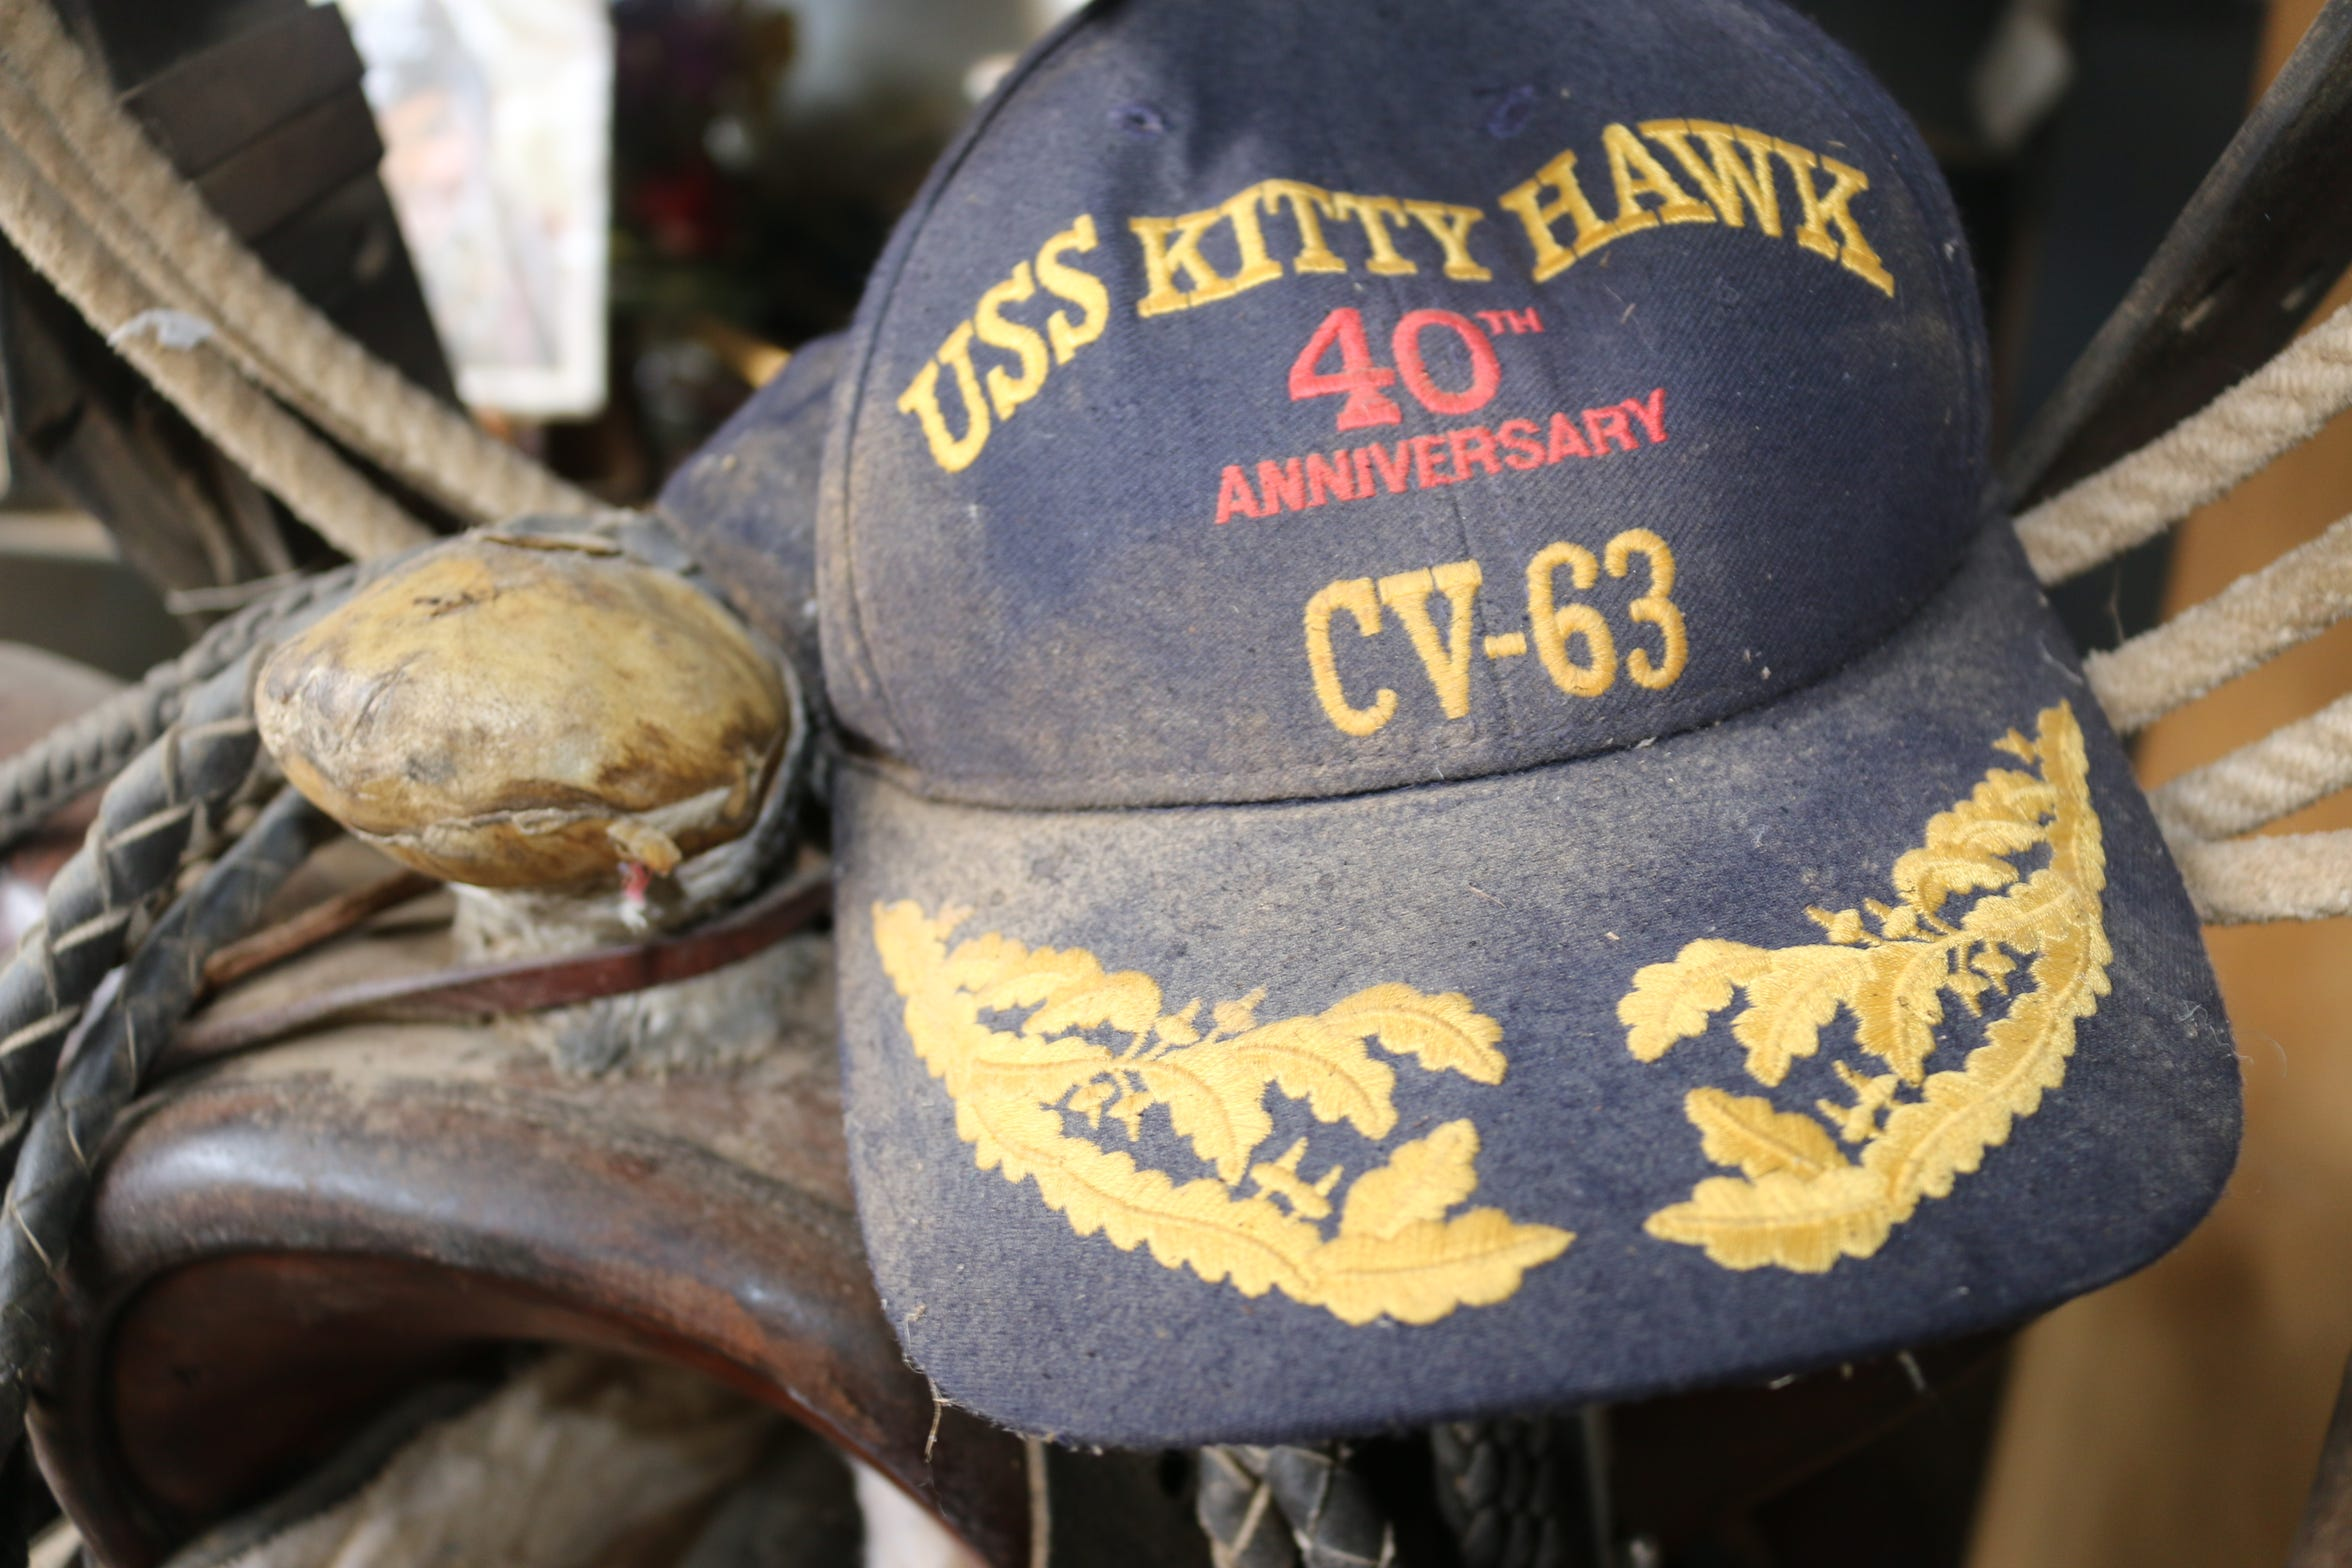 Ed Keeylocko's hat and saddle are pictured inside the Blue Dog Saloon at Cowtown Keeylocko.